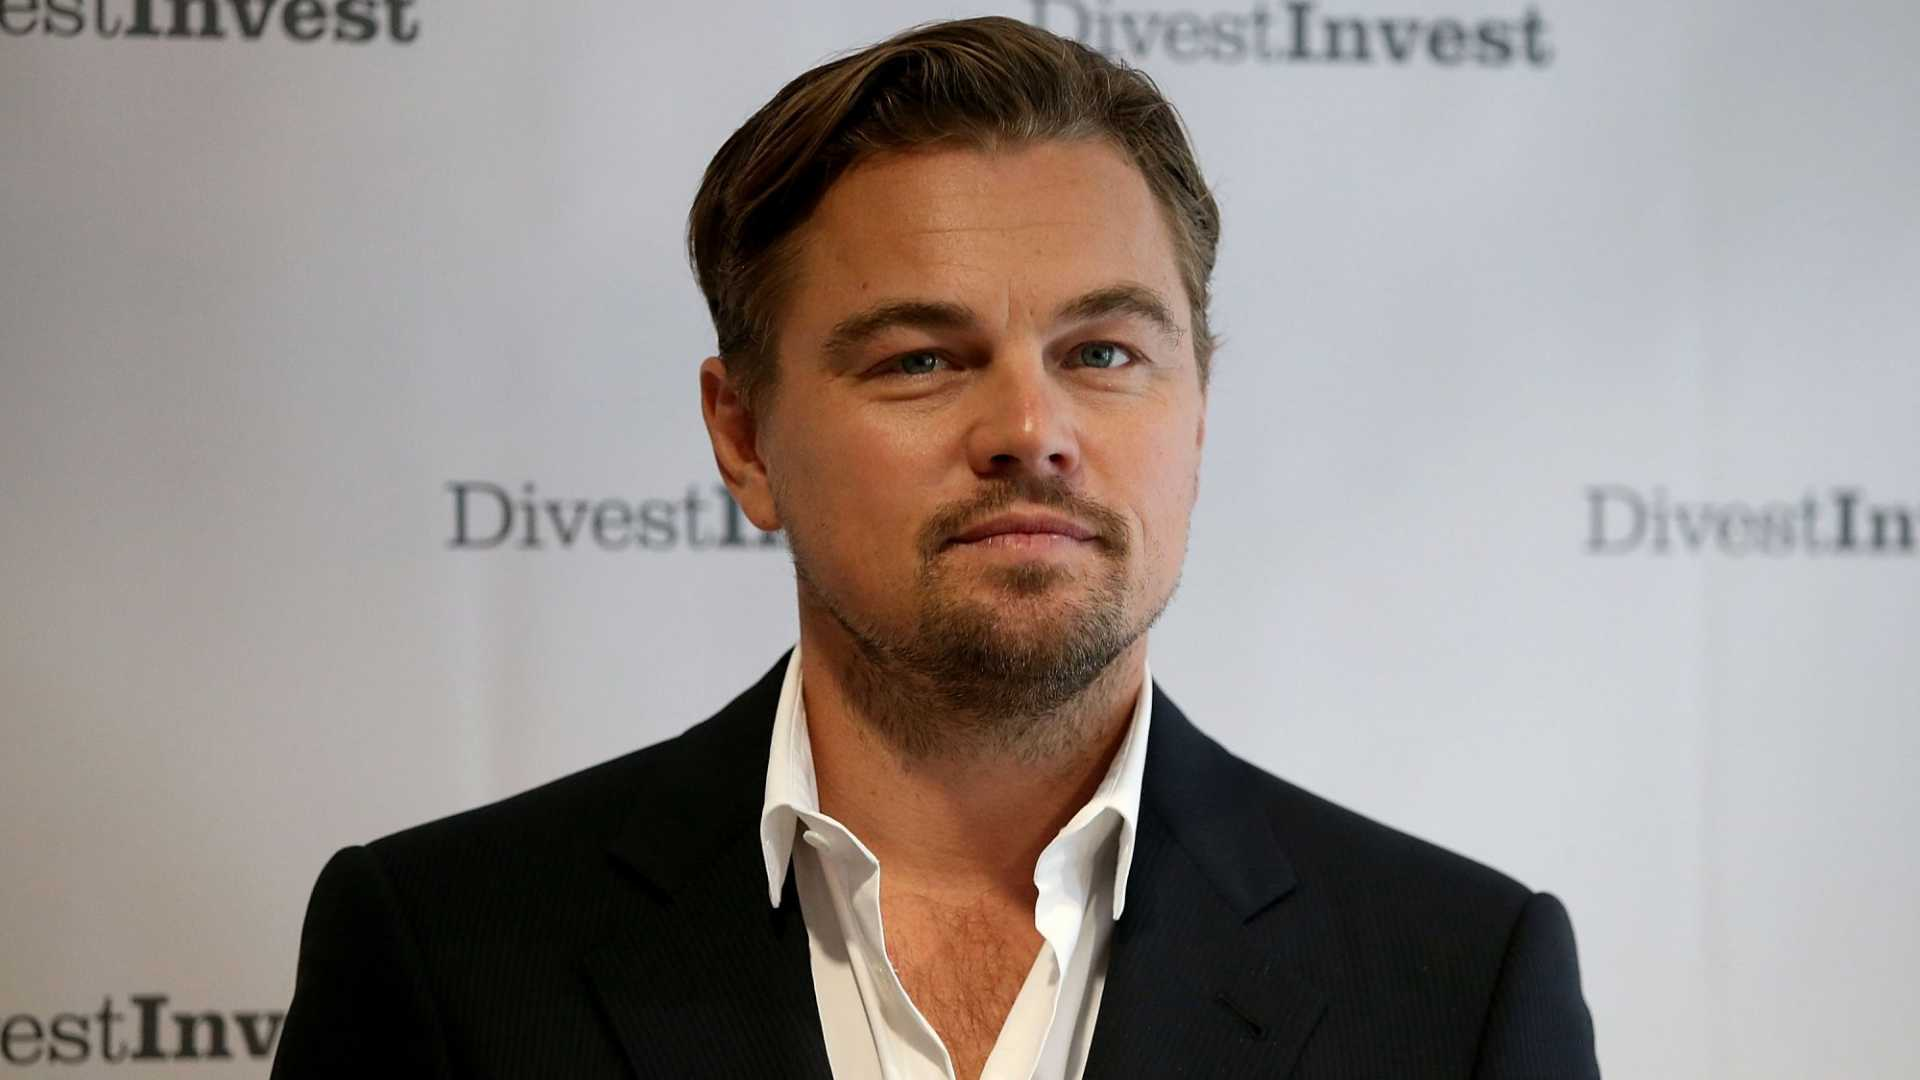 Leonardo DiCaprio Just Invested in This $5 Million Beverage Startup